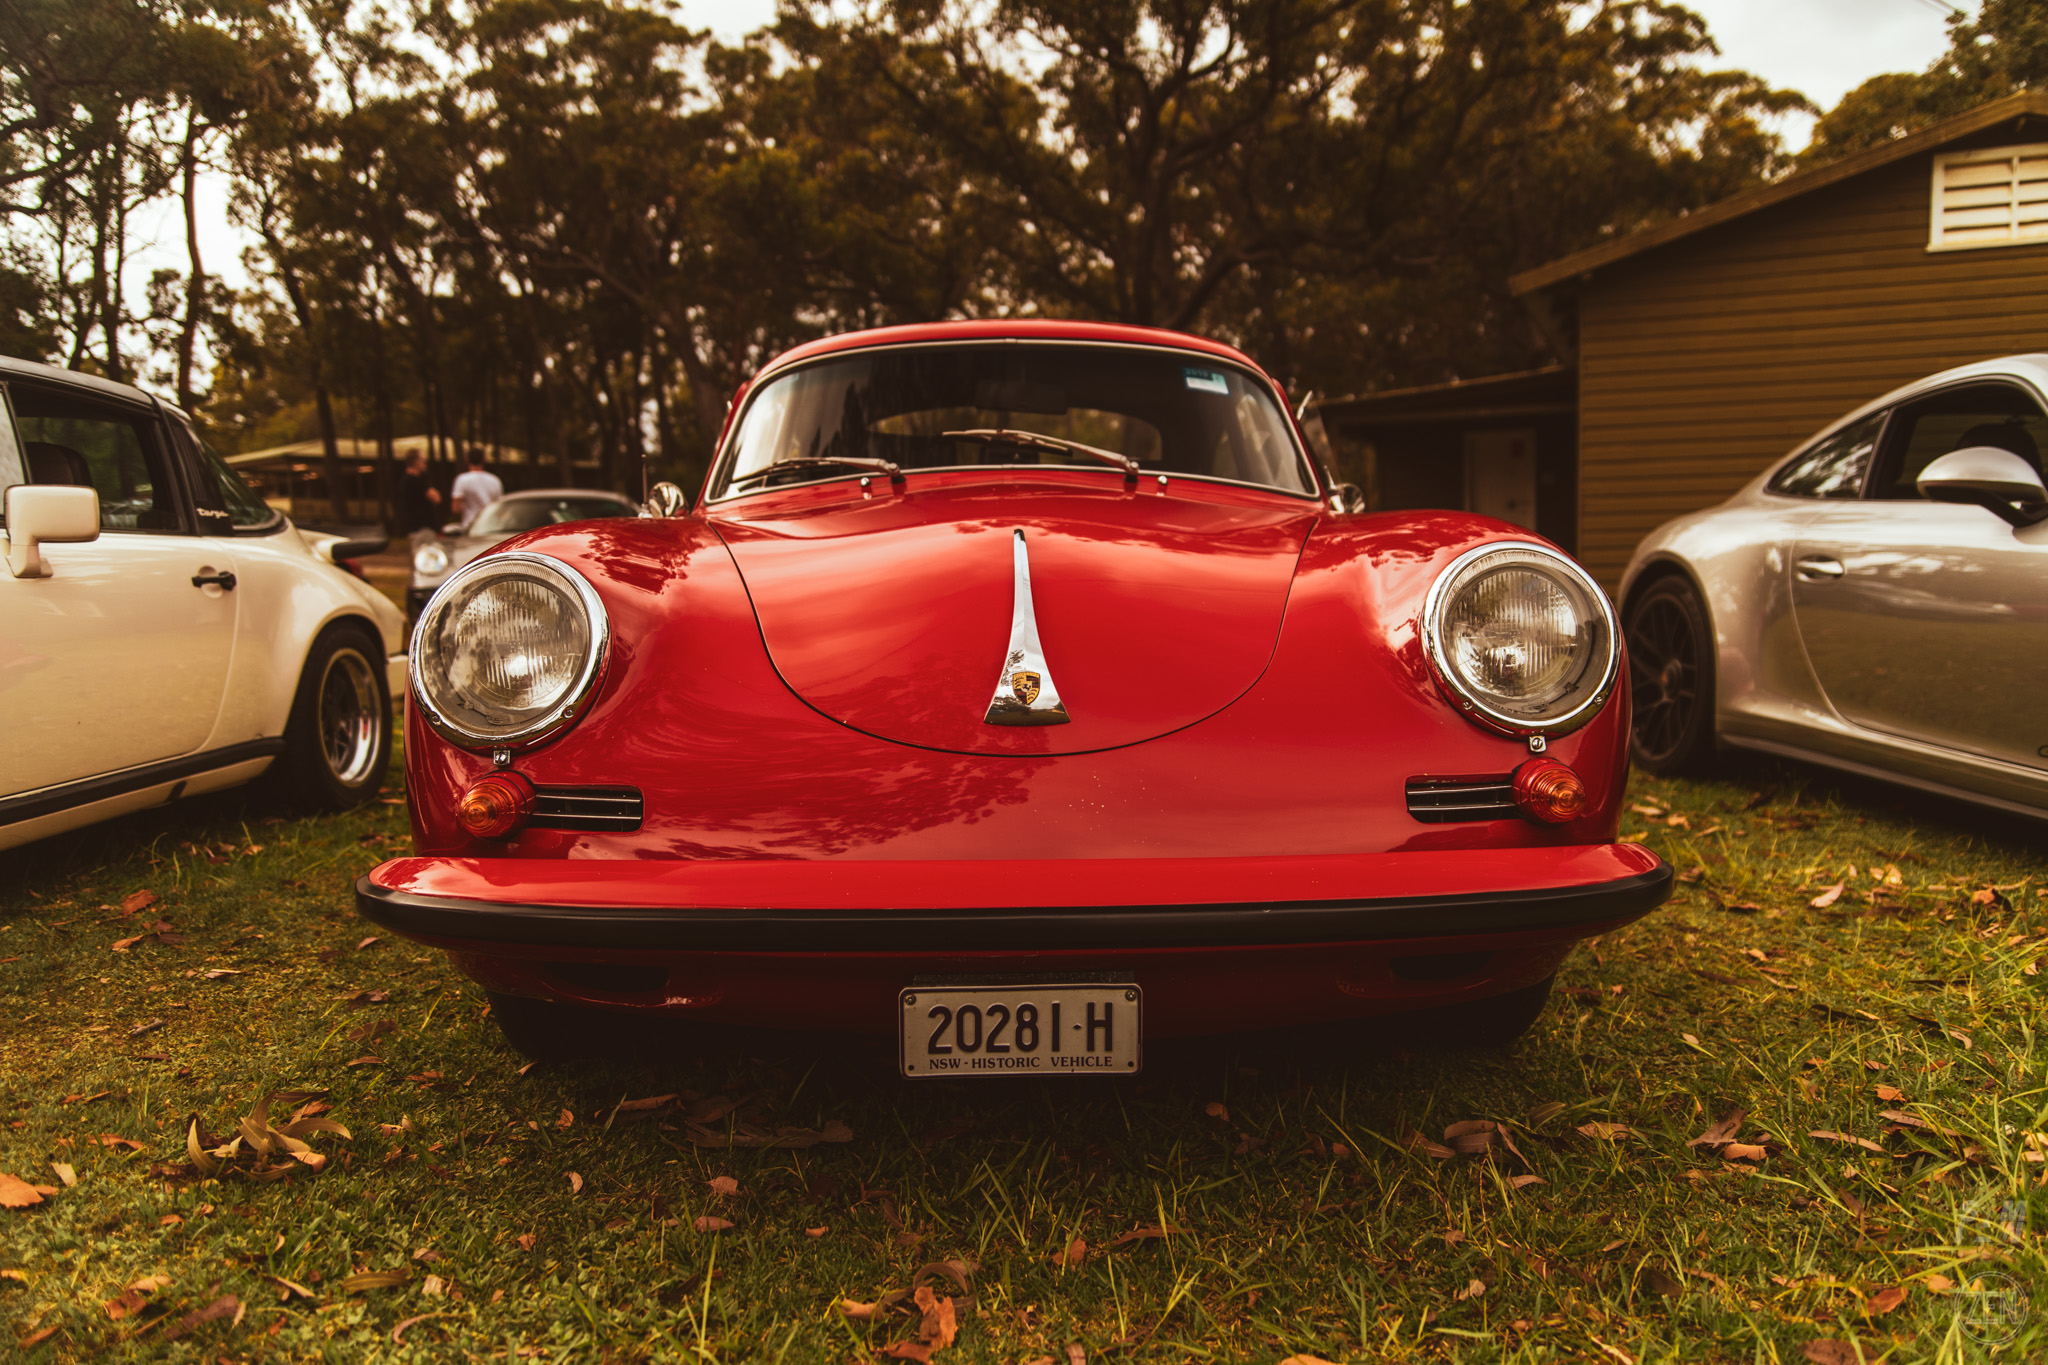 2019-12-08 - Porsches & Coffee 040